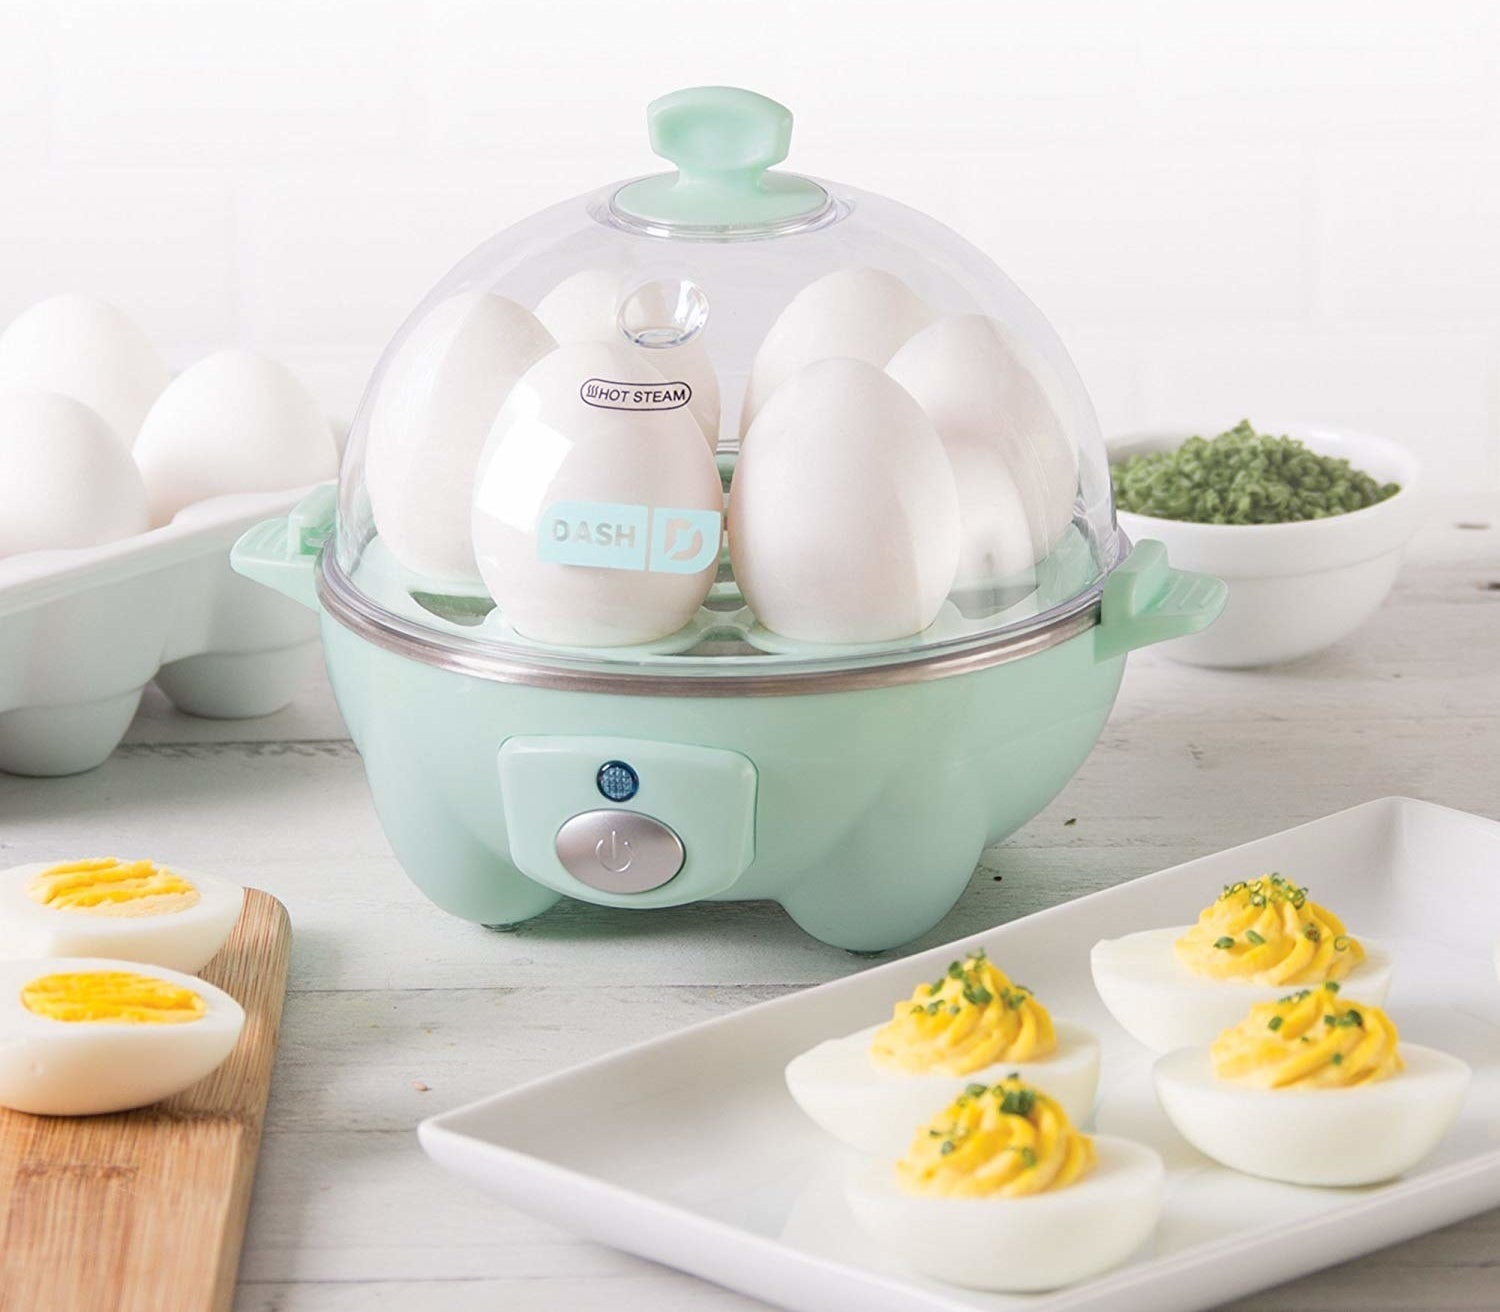 The dome-shaped egg cooker in aqua